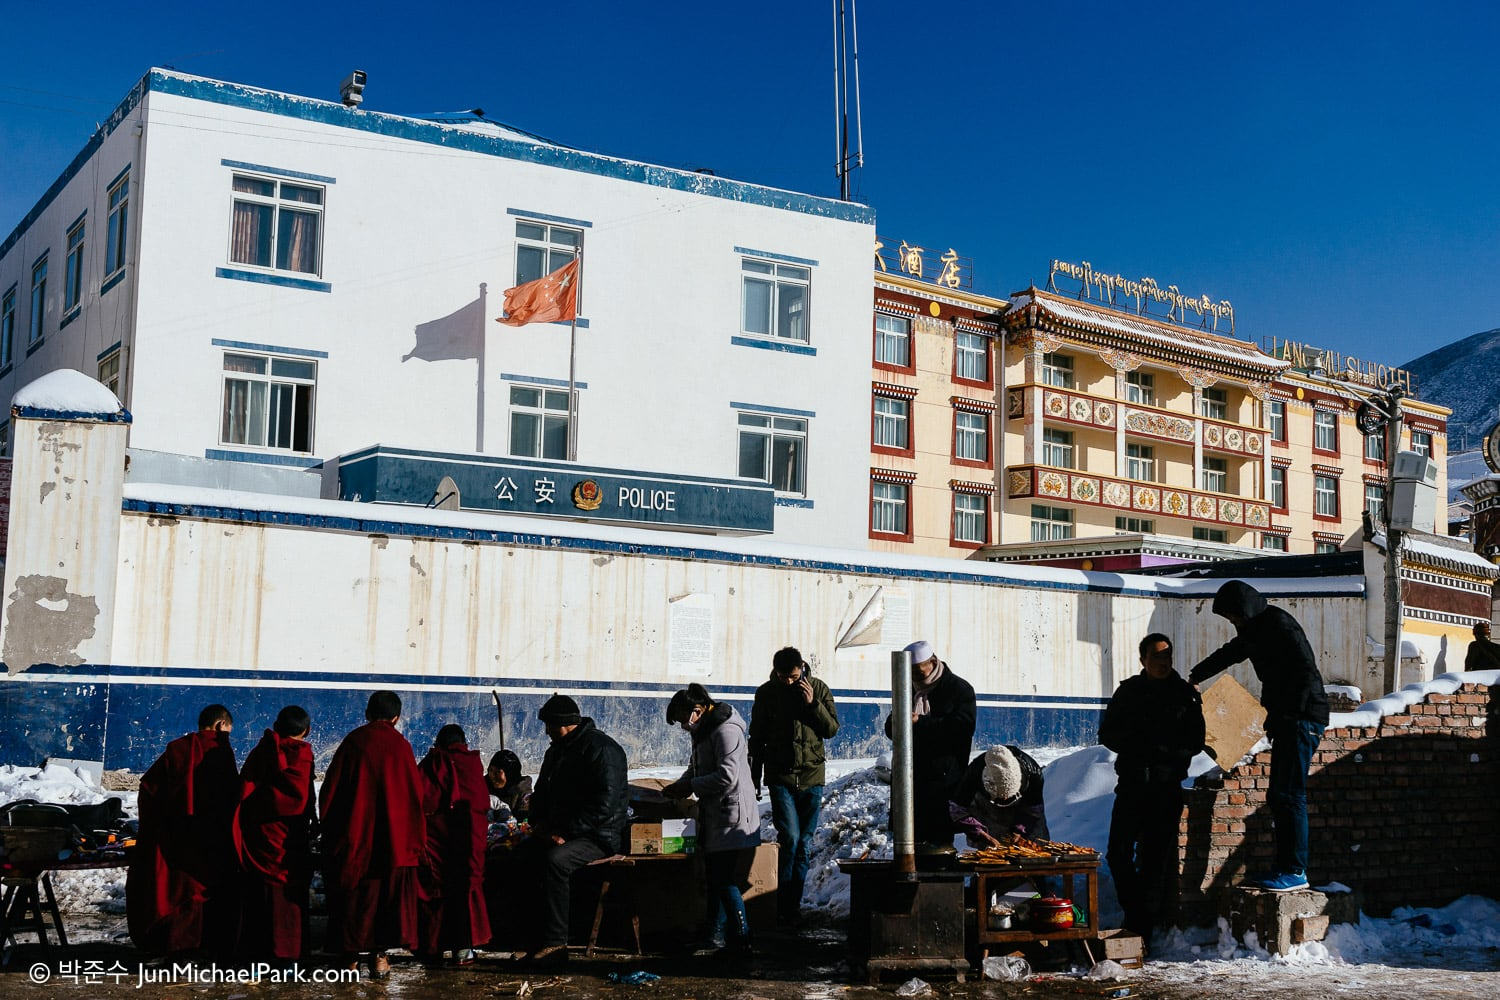 Feb, 2014 - Tibetan child monks gather at a vendor in front of a Gongan office in Langmusi, Gannan, Gansu Province, China.